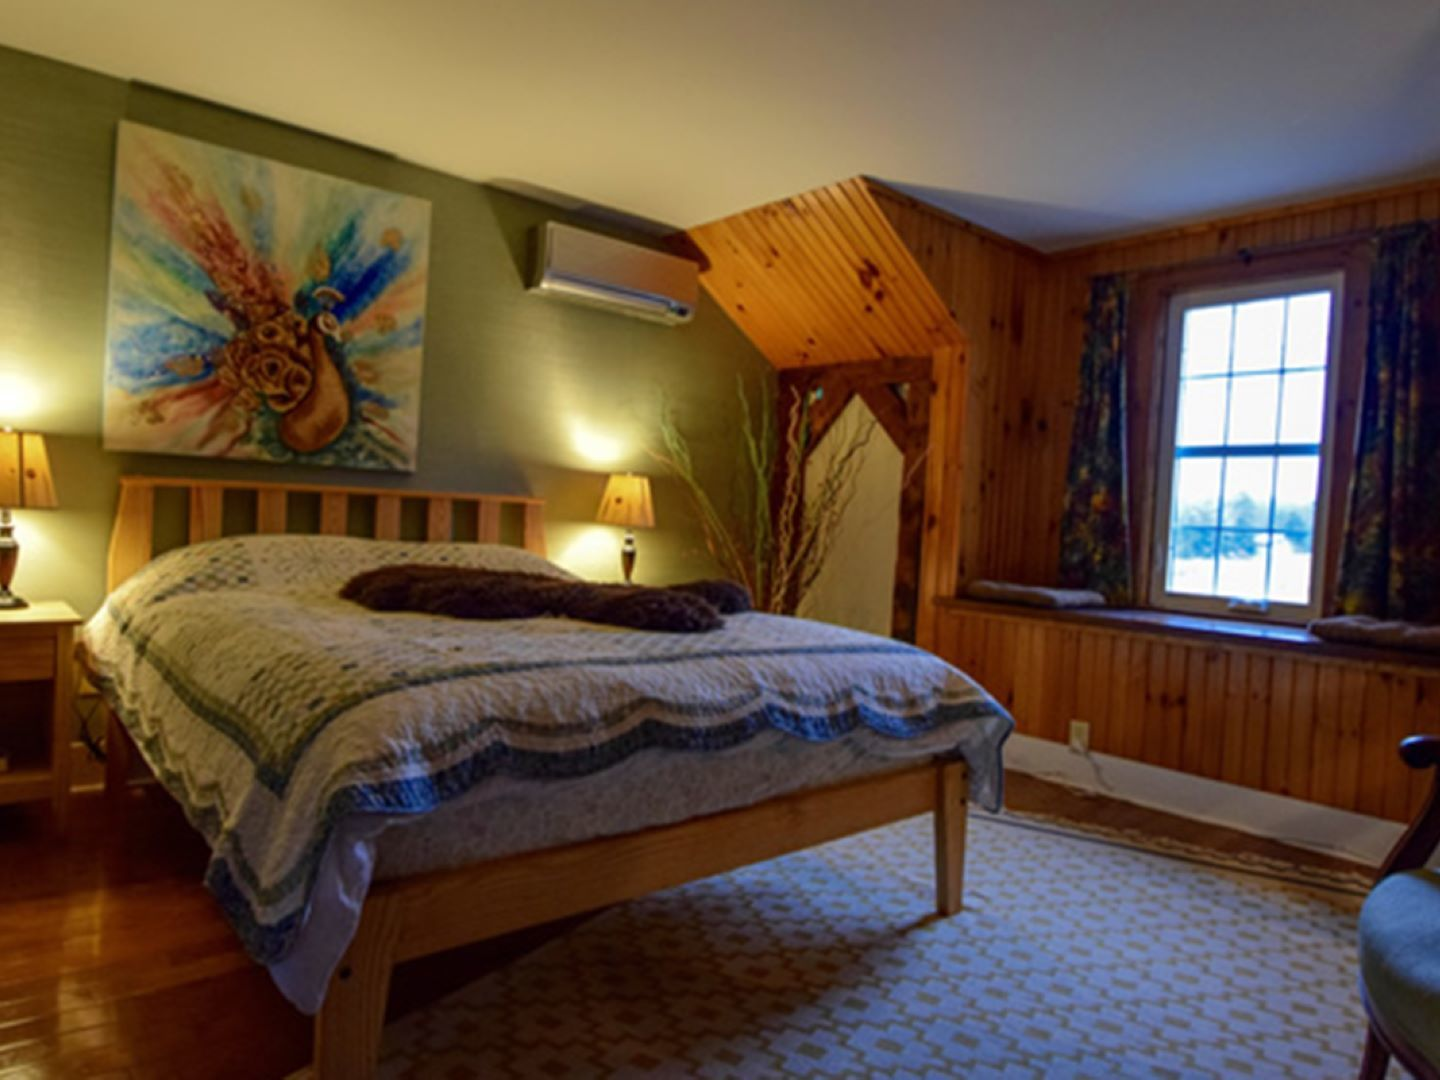 A bedroom with a bed and window in a room at Enfield Manor Bed and Breakfast and Vacation Rentals.